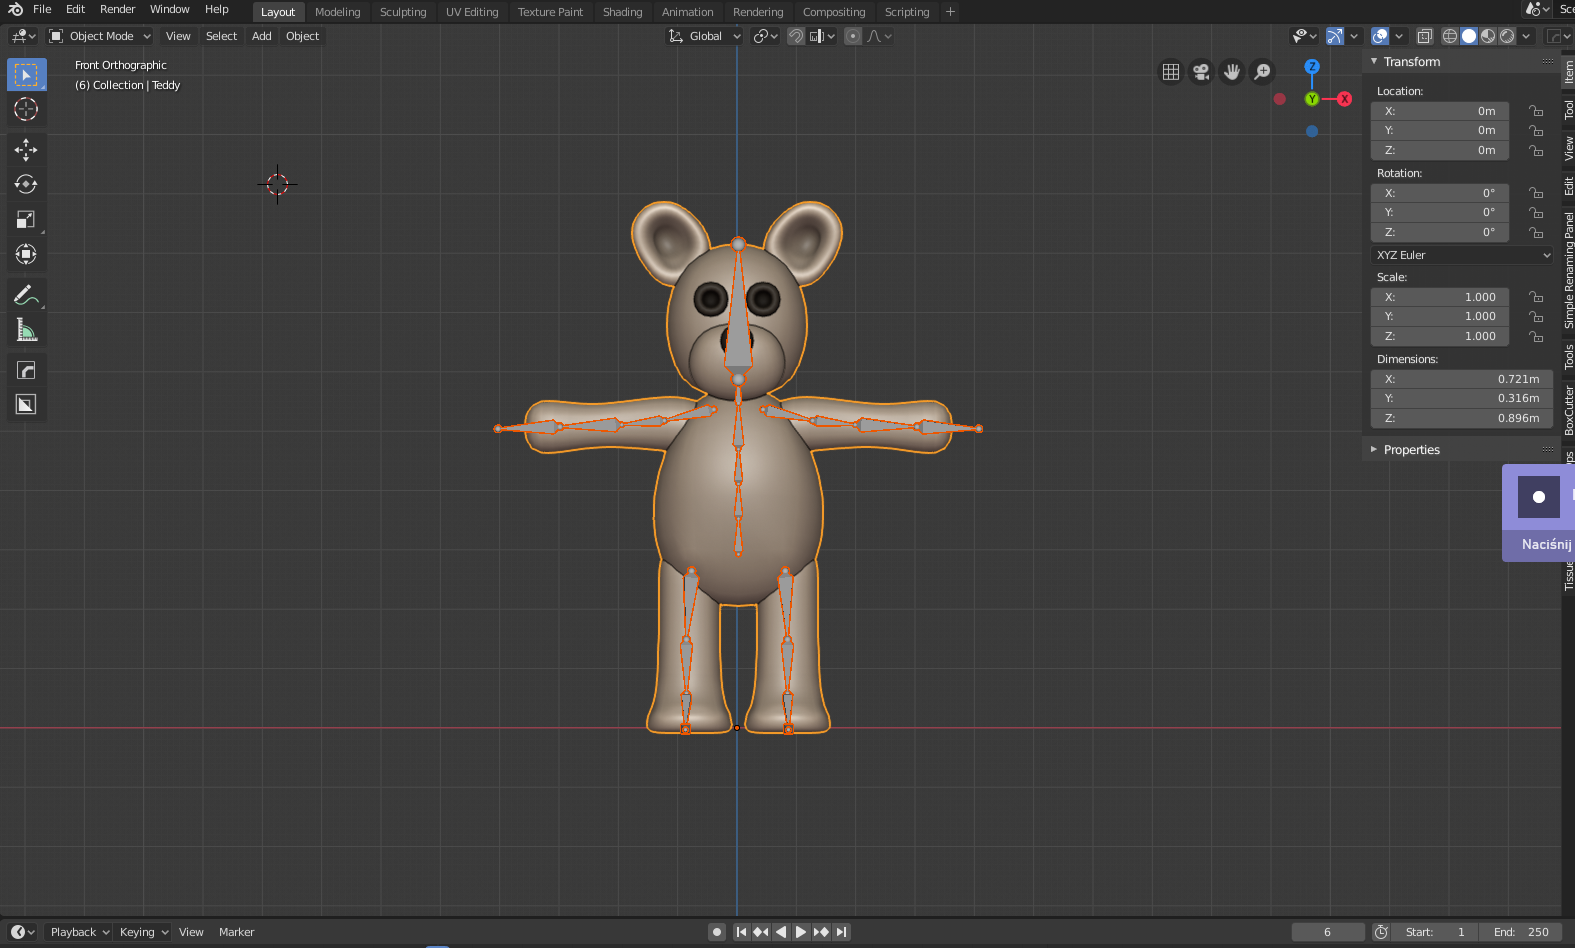 Animation Retargeting retargeting animations with blender 2.80 - unity connect